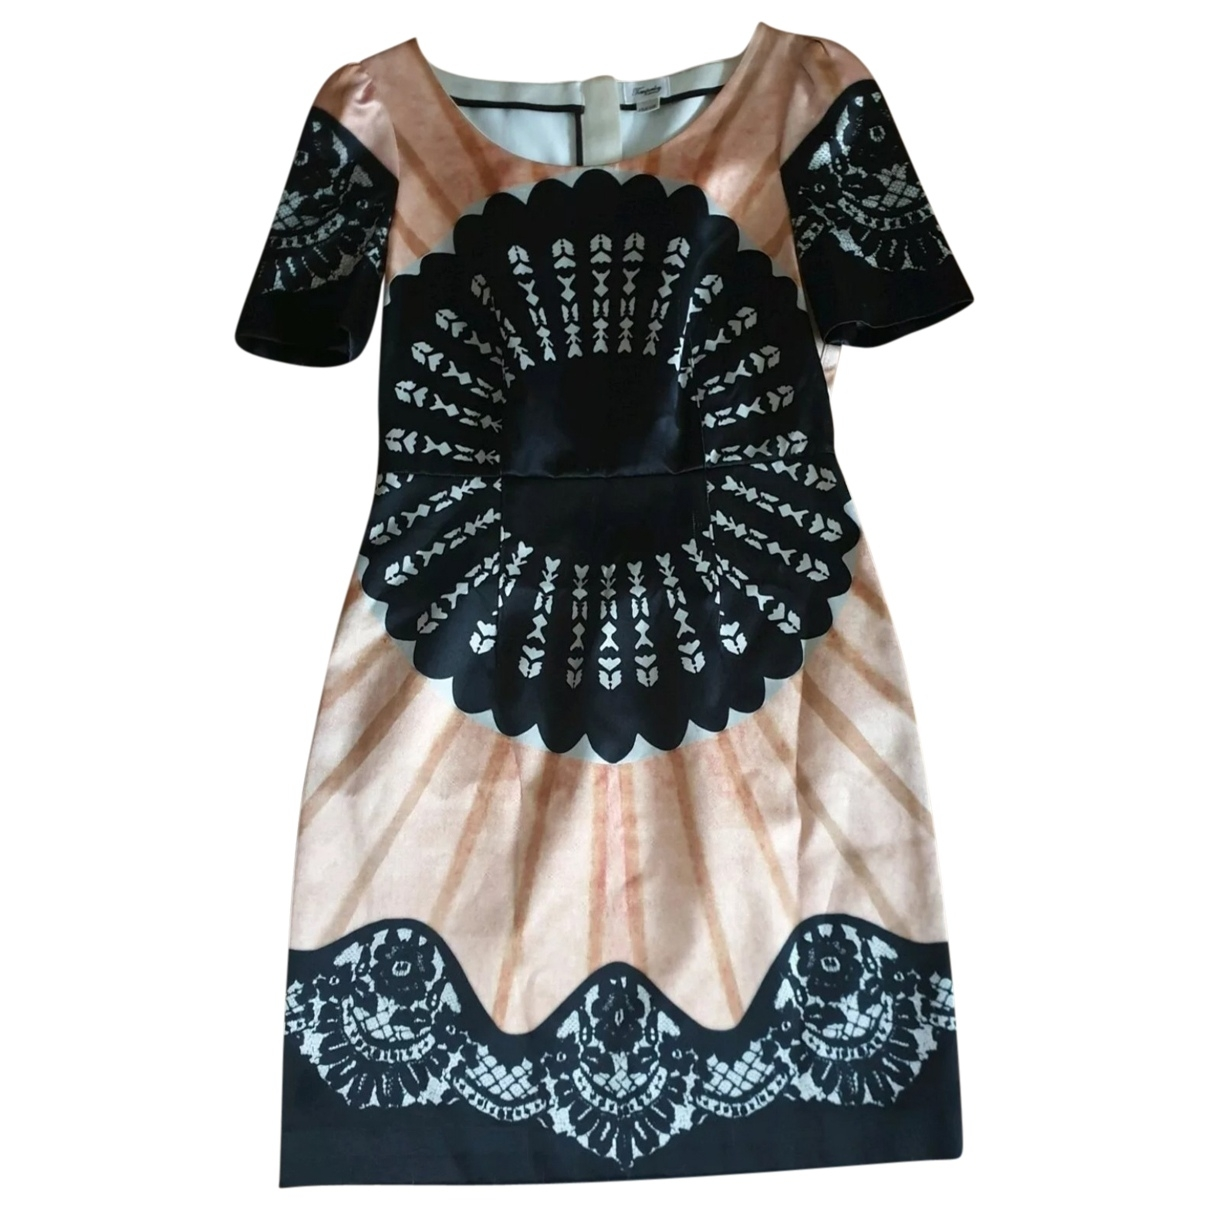 Temperley London - Robe   pour femme en soie - multicolore